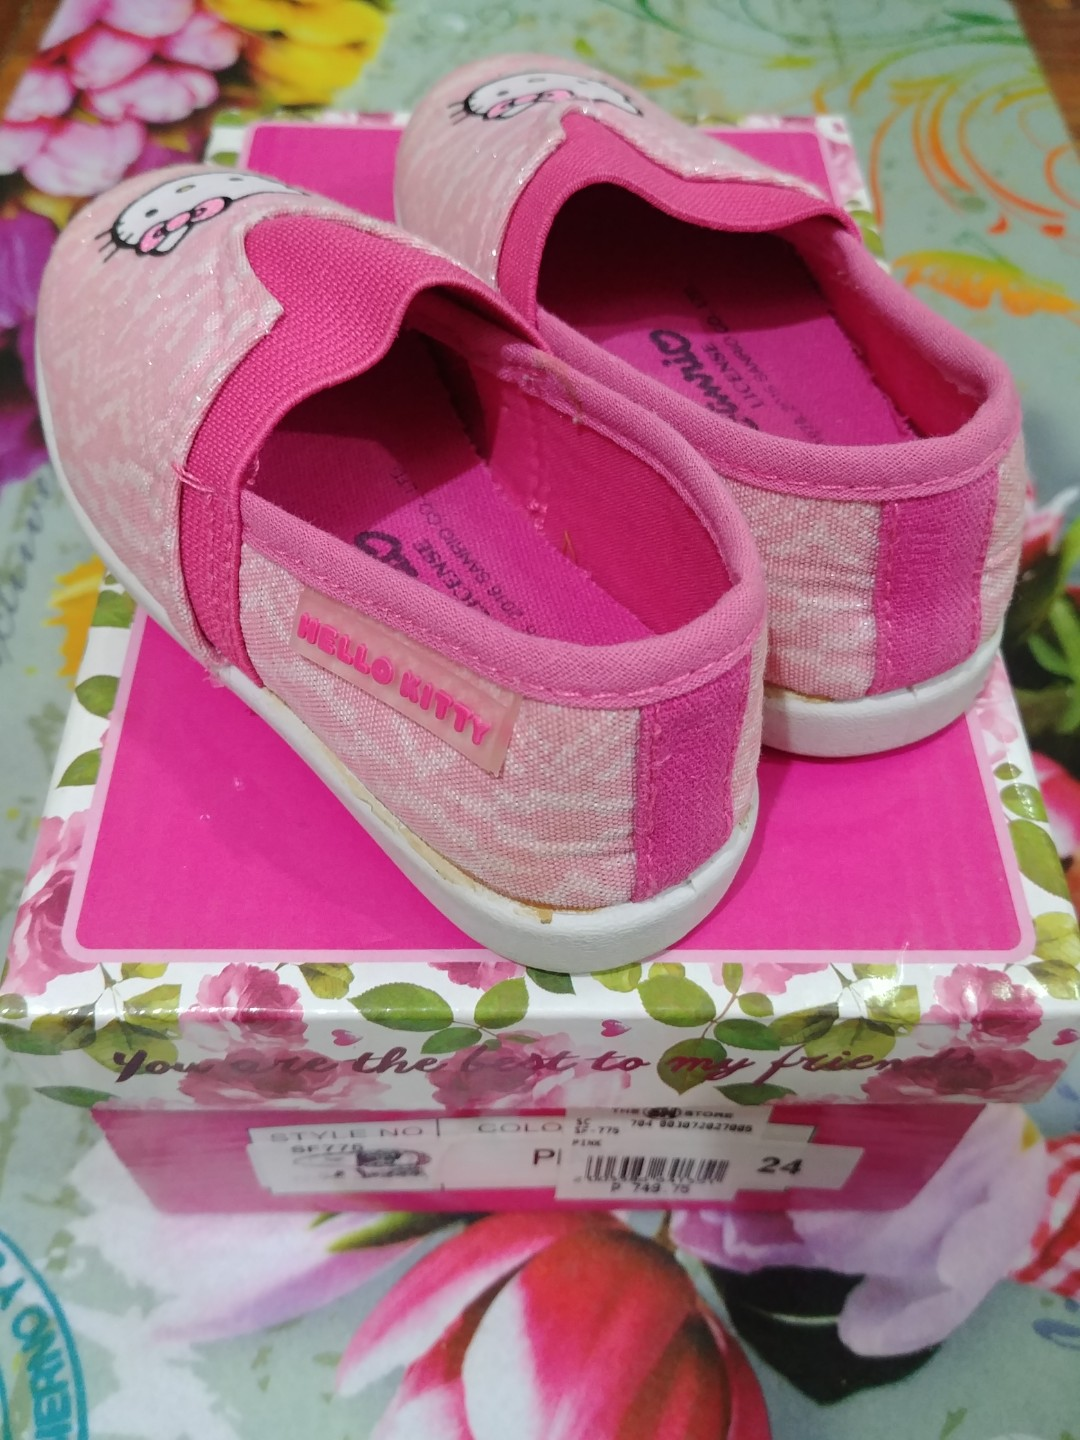 5a70a5984 Hello Kitty toddler shoes, Babies & Kids, Others on Carousell